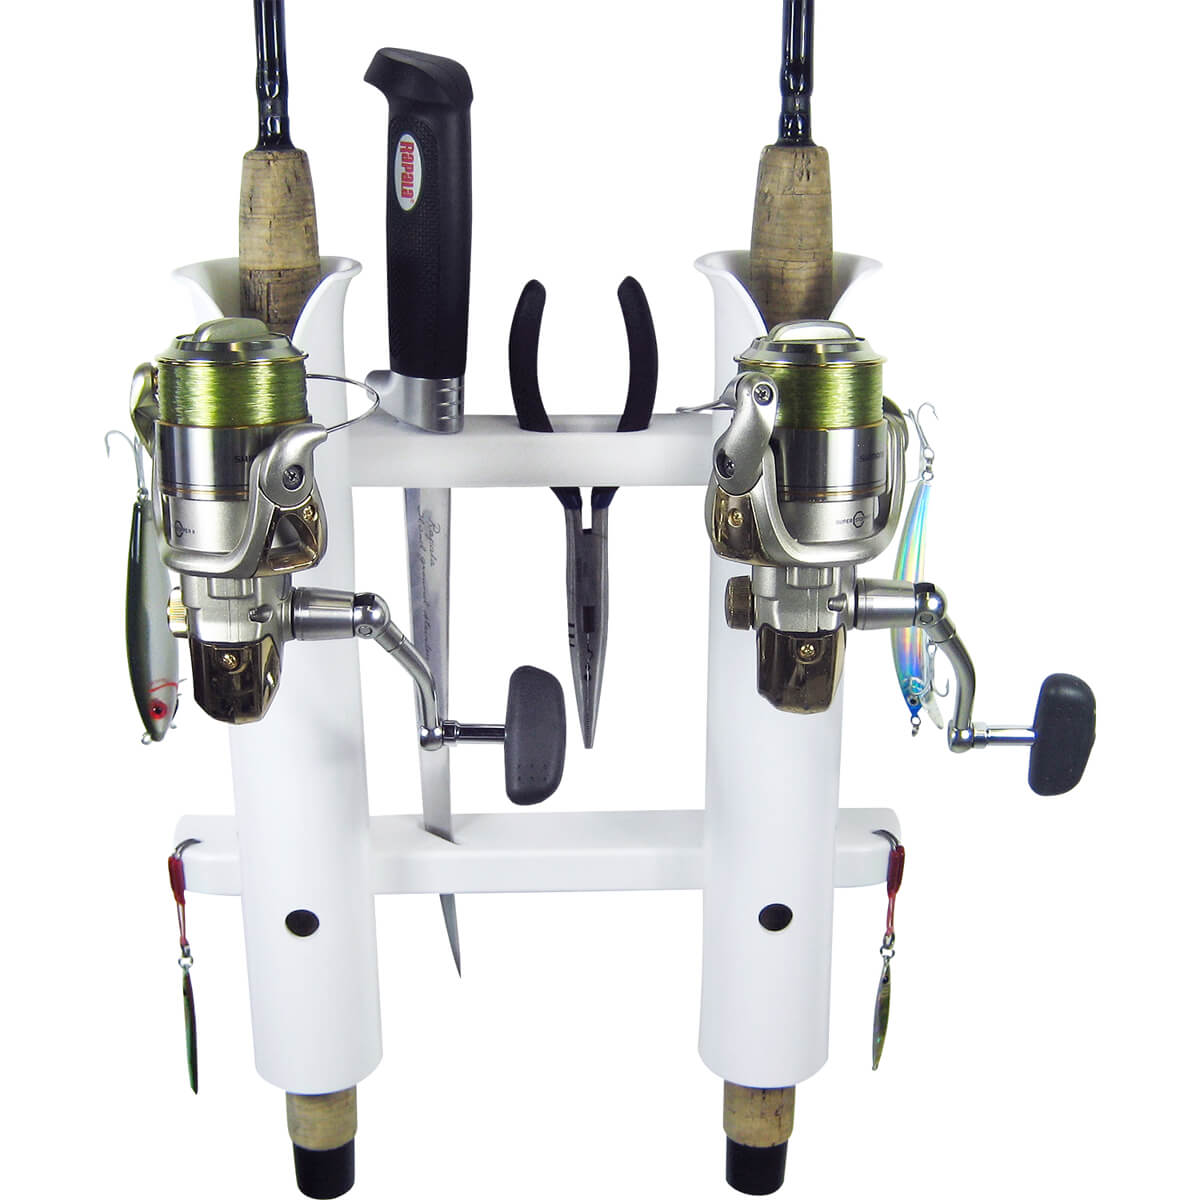 2 rod deluxe fishing rod holder rack white boat outfitters for Fishing pole holders for boats